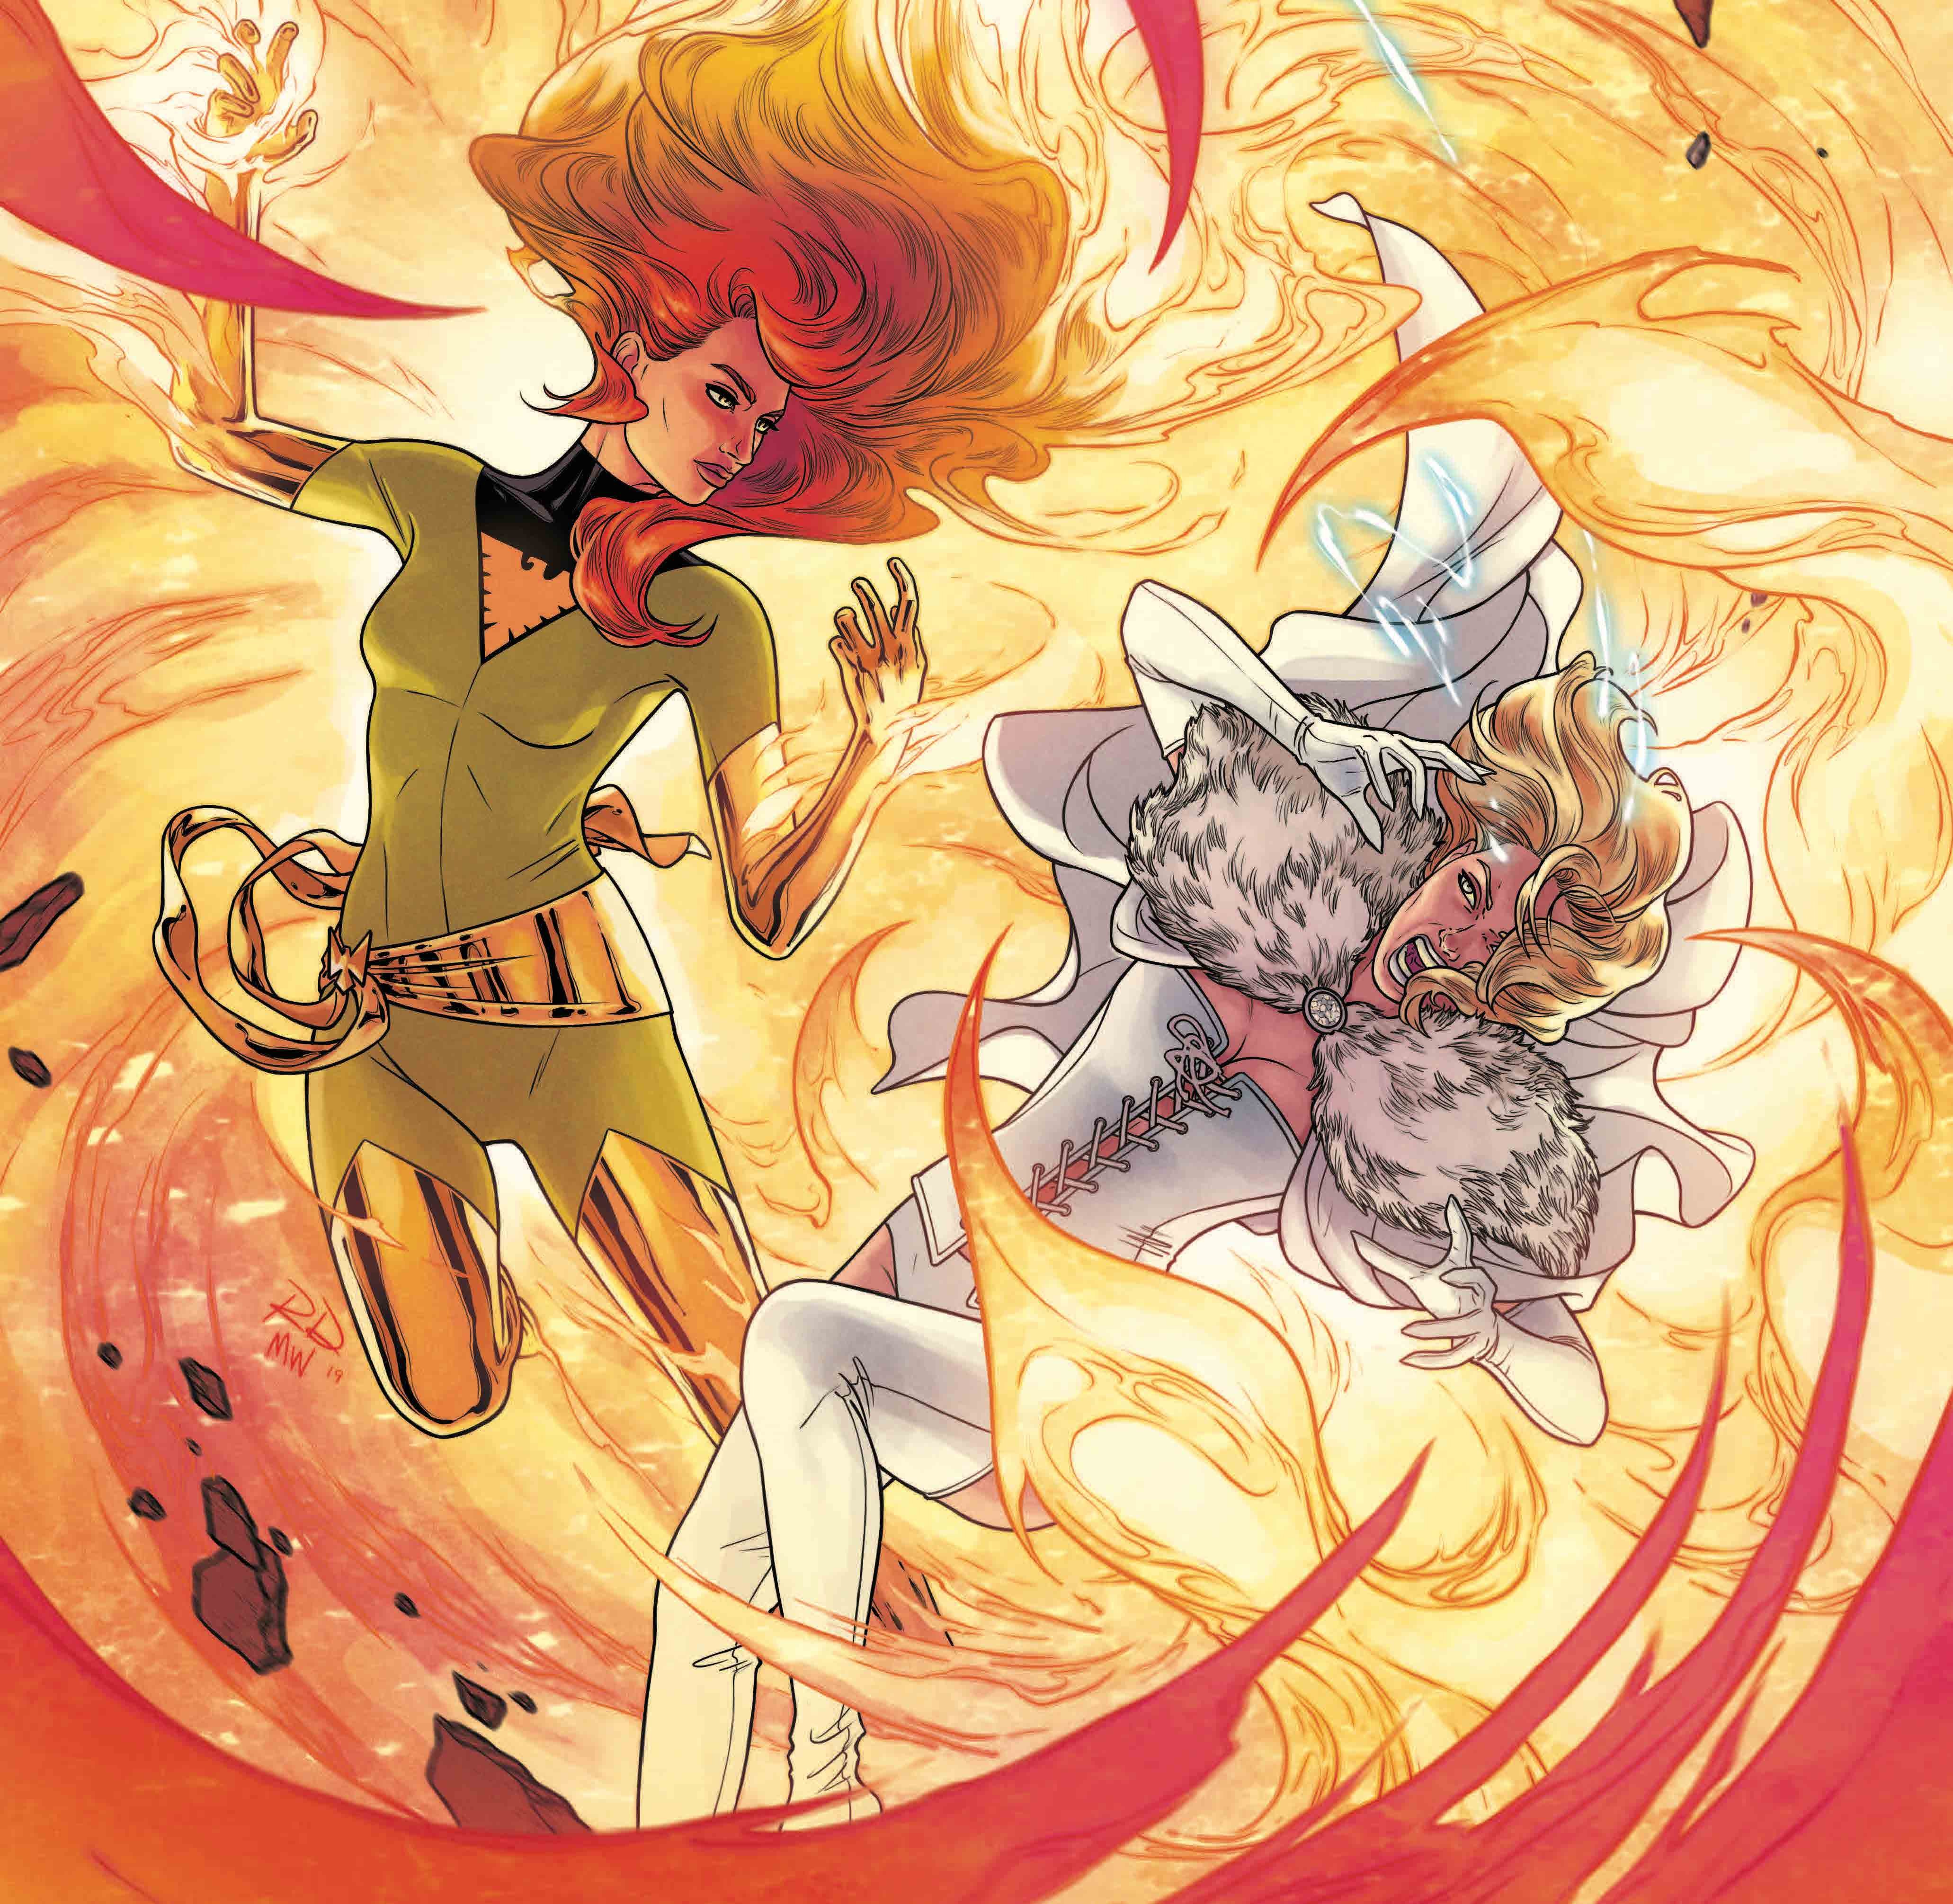 New variant covers coming giving Jean Grey's Phoenix all the attention.